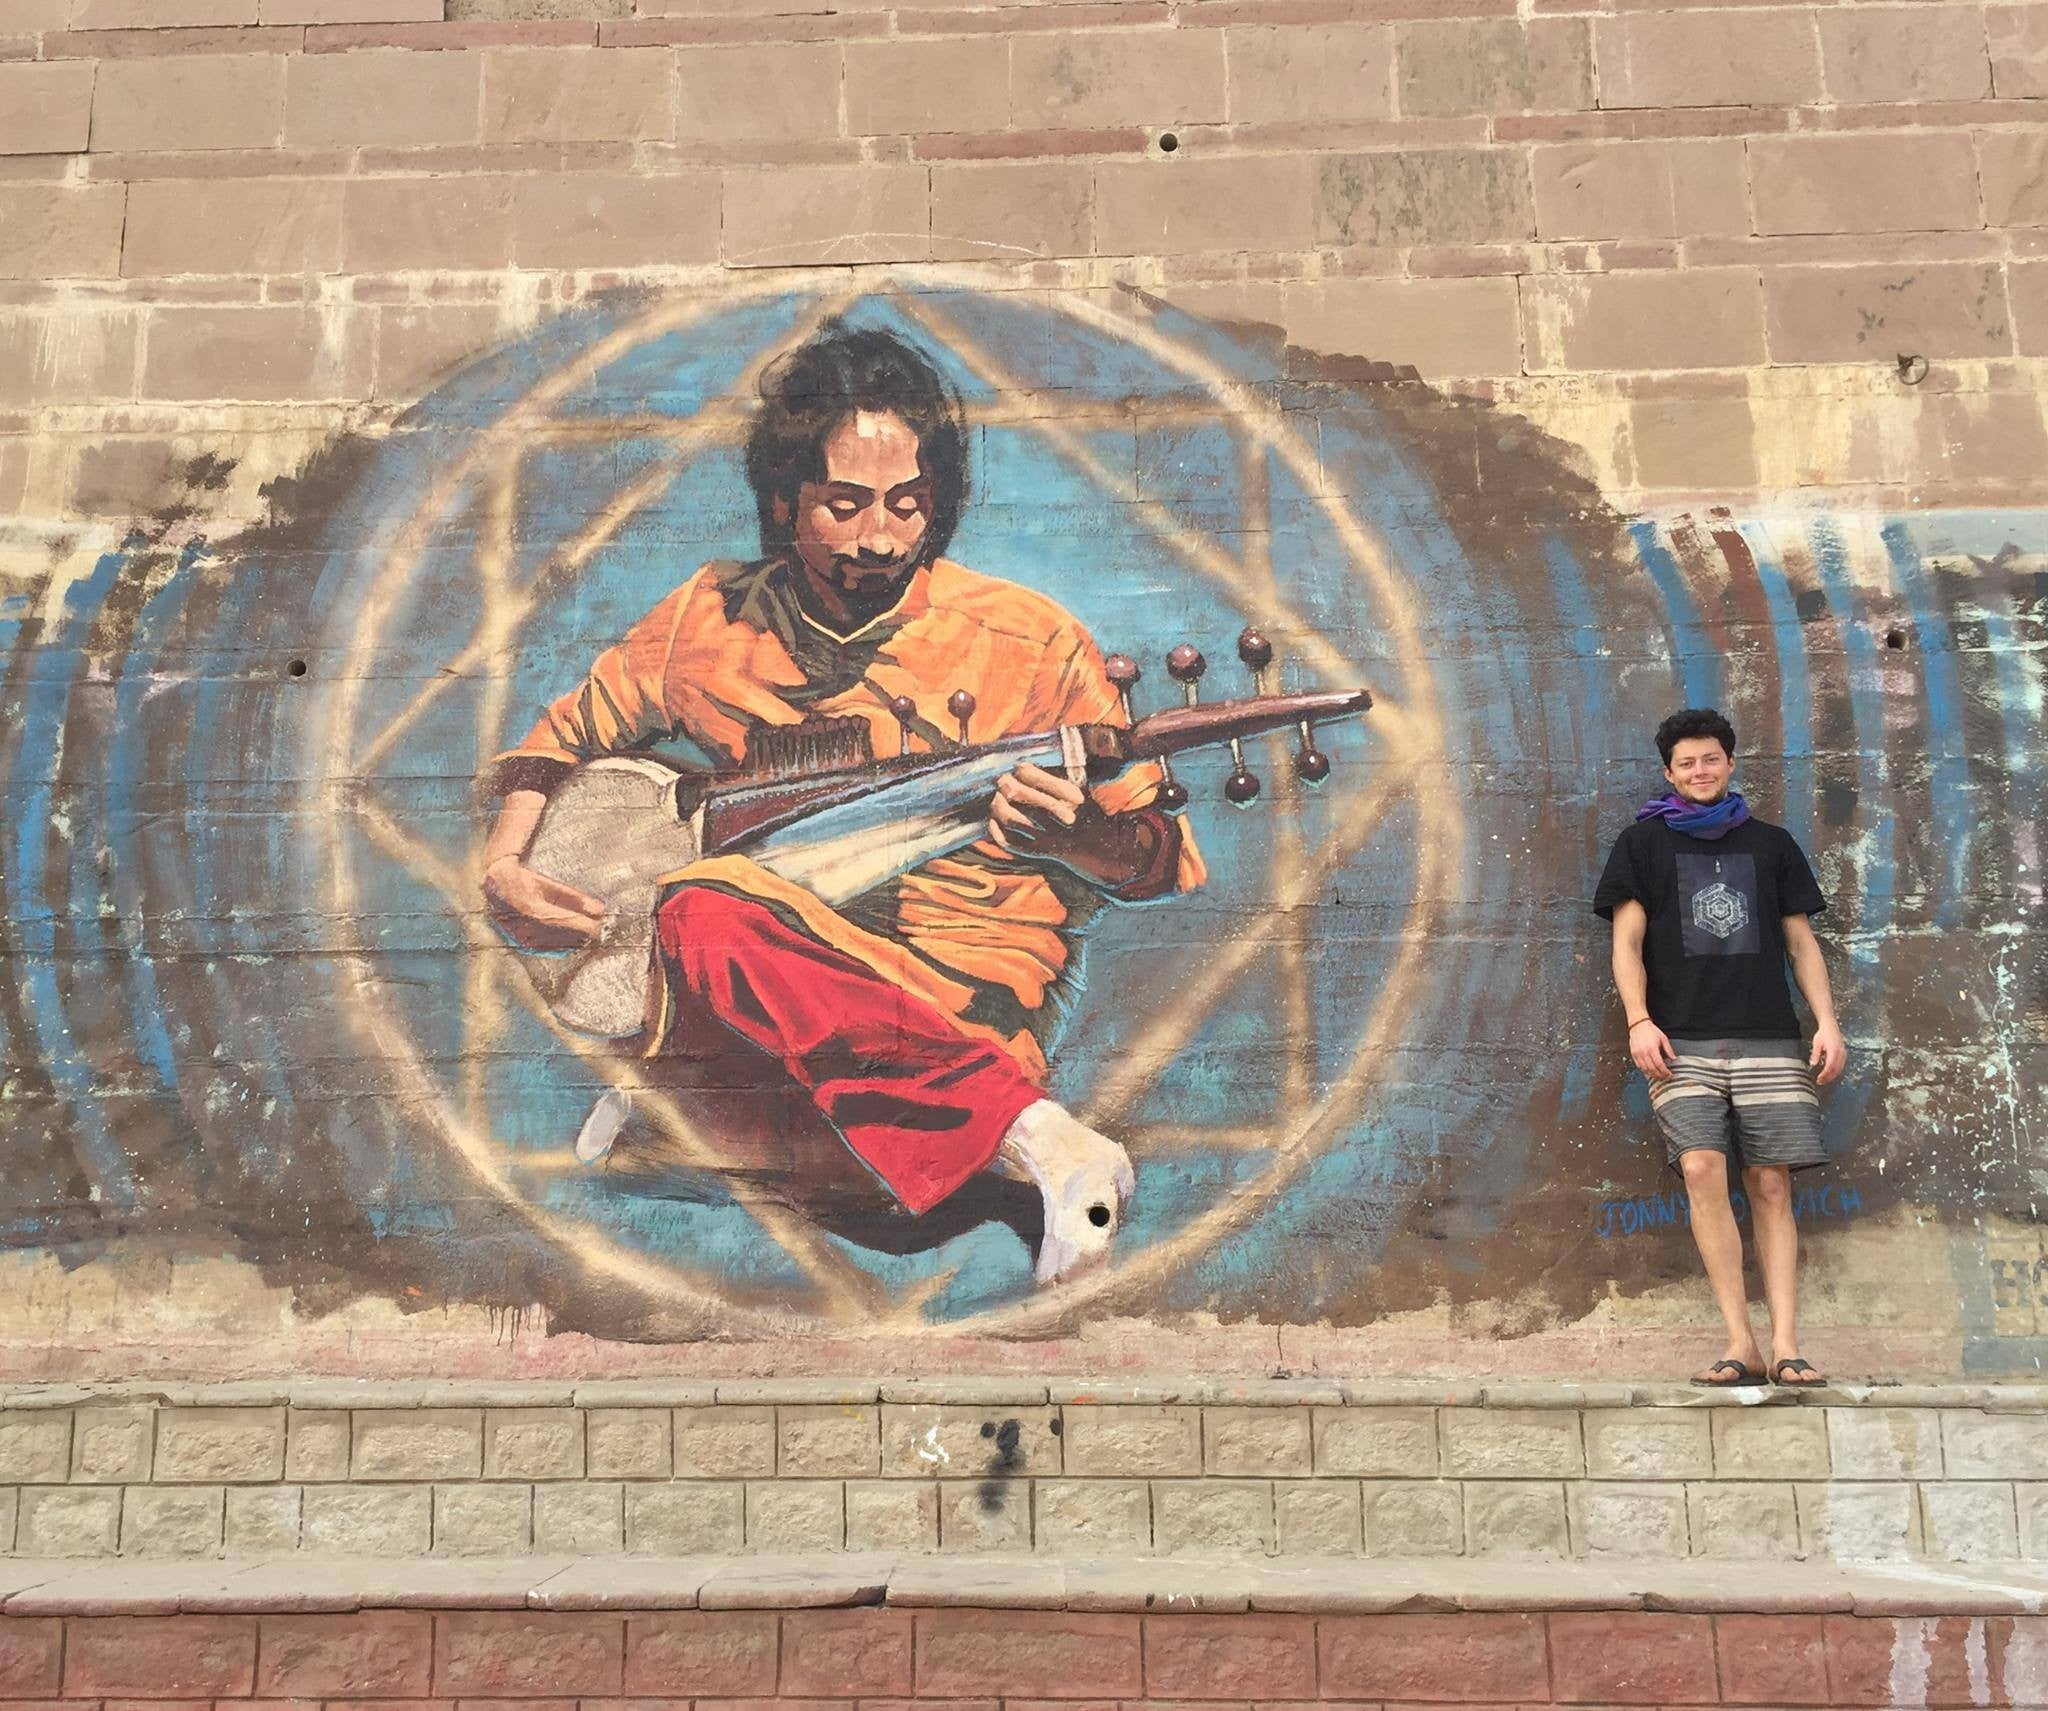 The Transcendence of Music, Mural in Varanasi, India